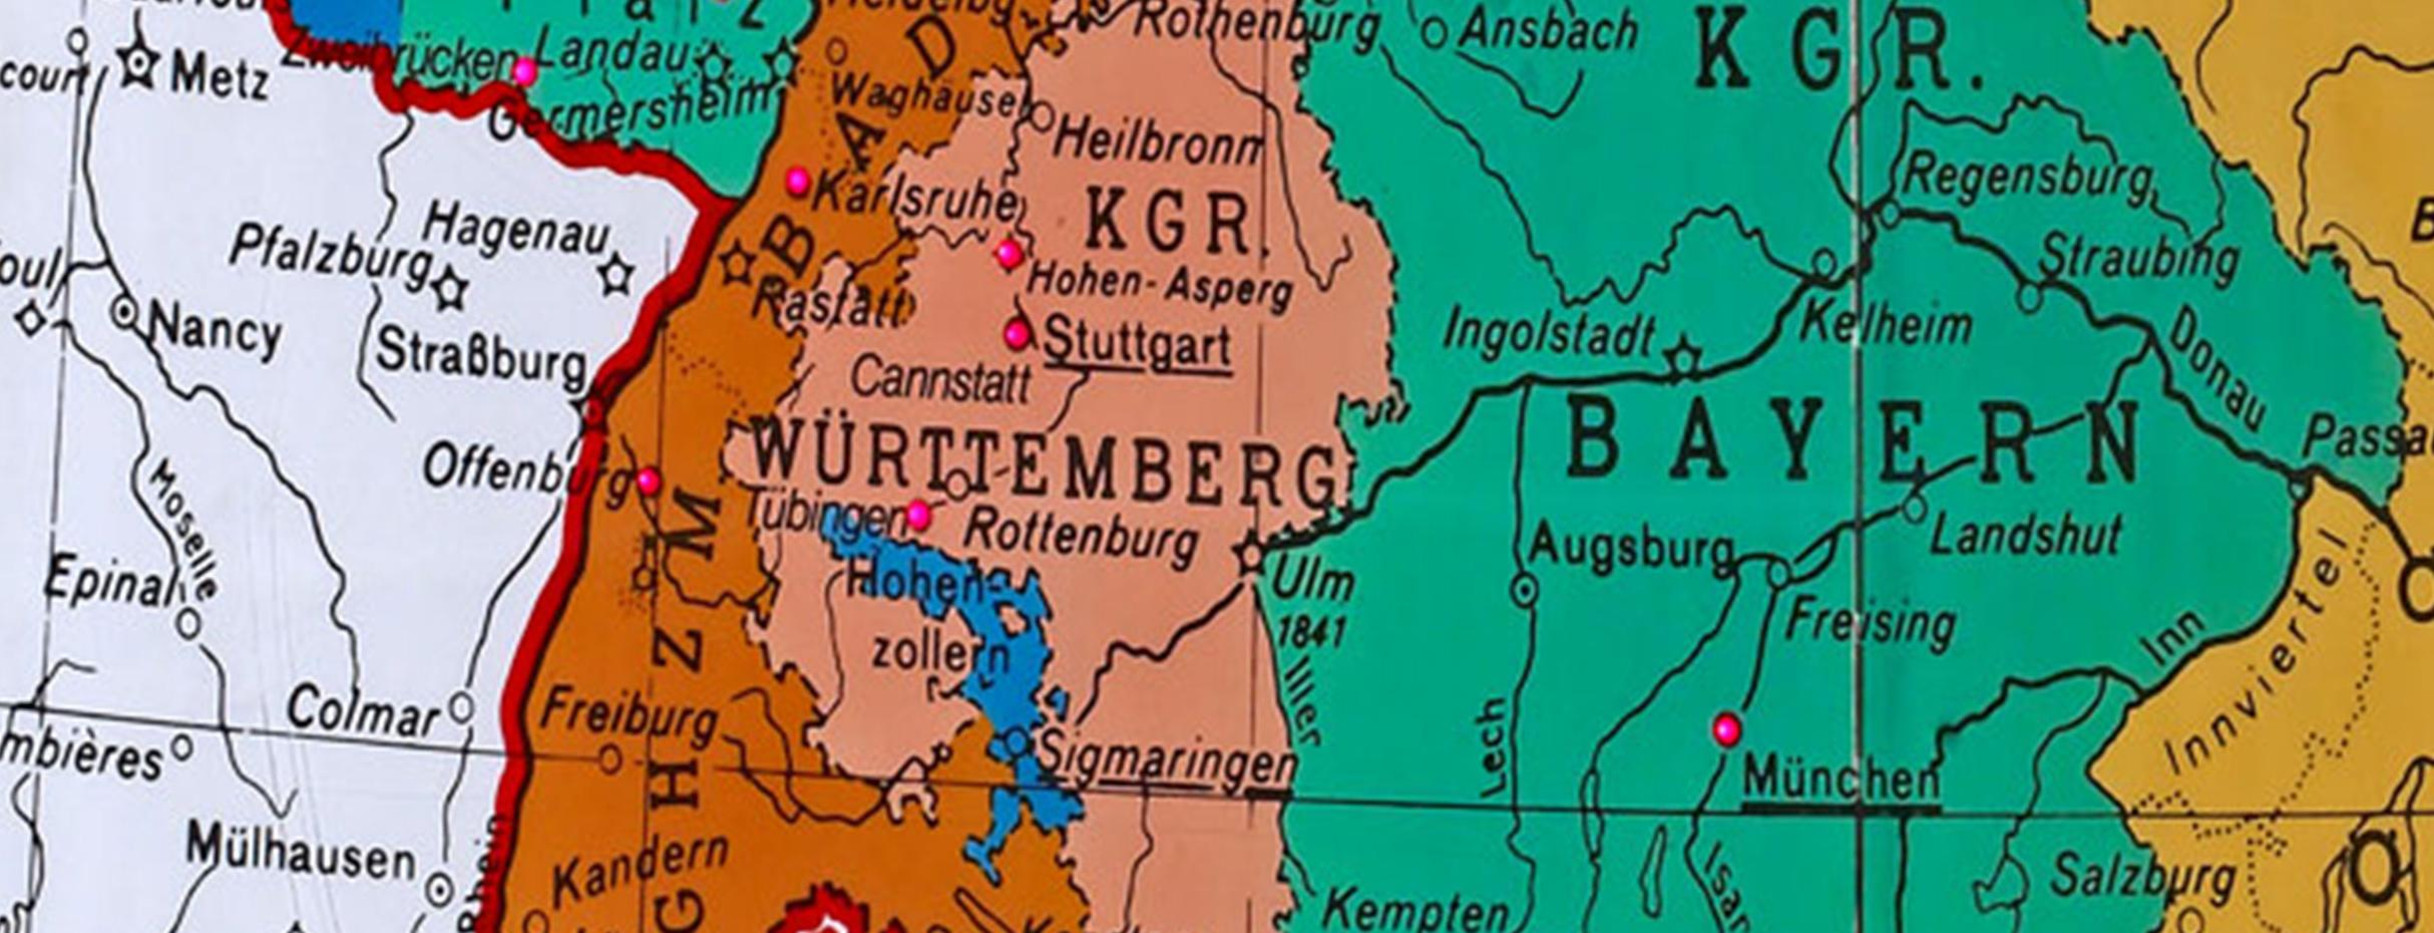 Map Of Germany Throughout History.State History Baden Wurttemberg De